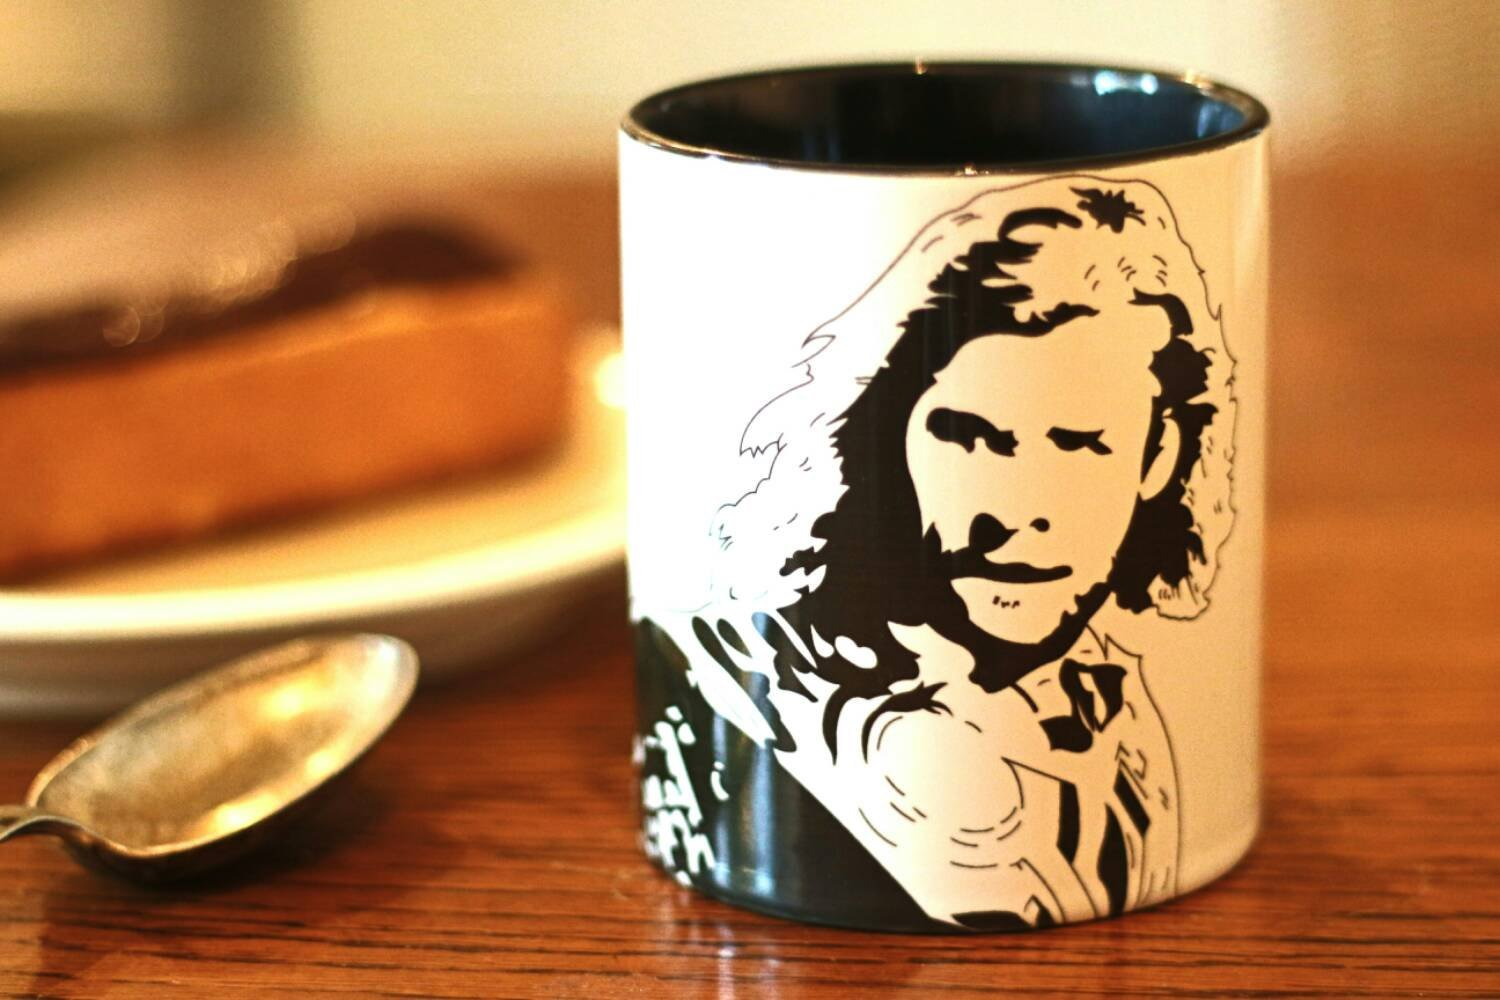 Chris Hemsworth Hand crafted Cup - ByCandlelight27